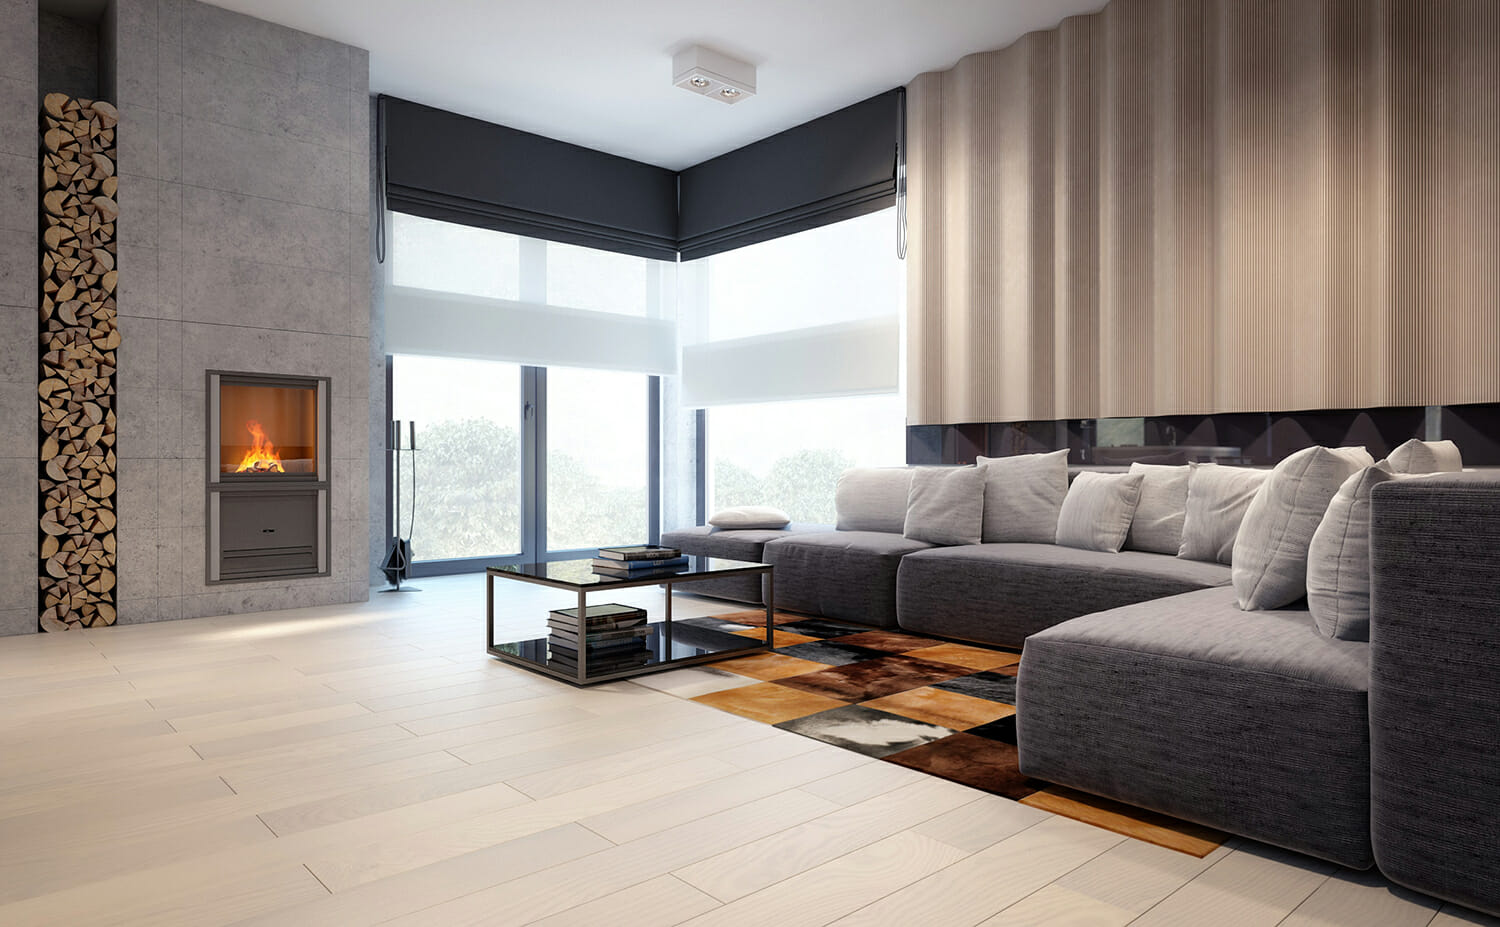 Apartment Renovation Project in Bettersea